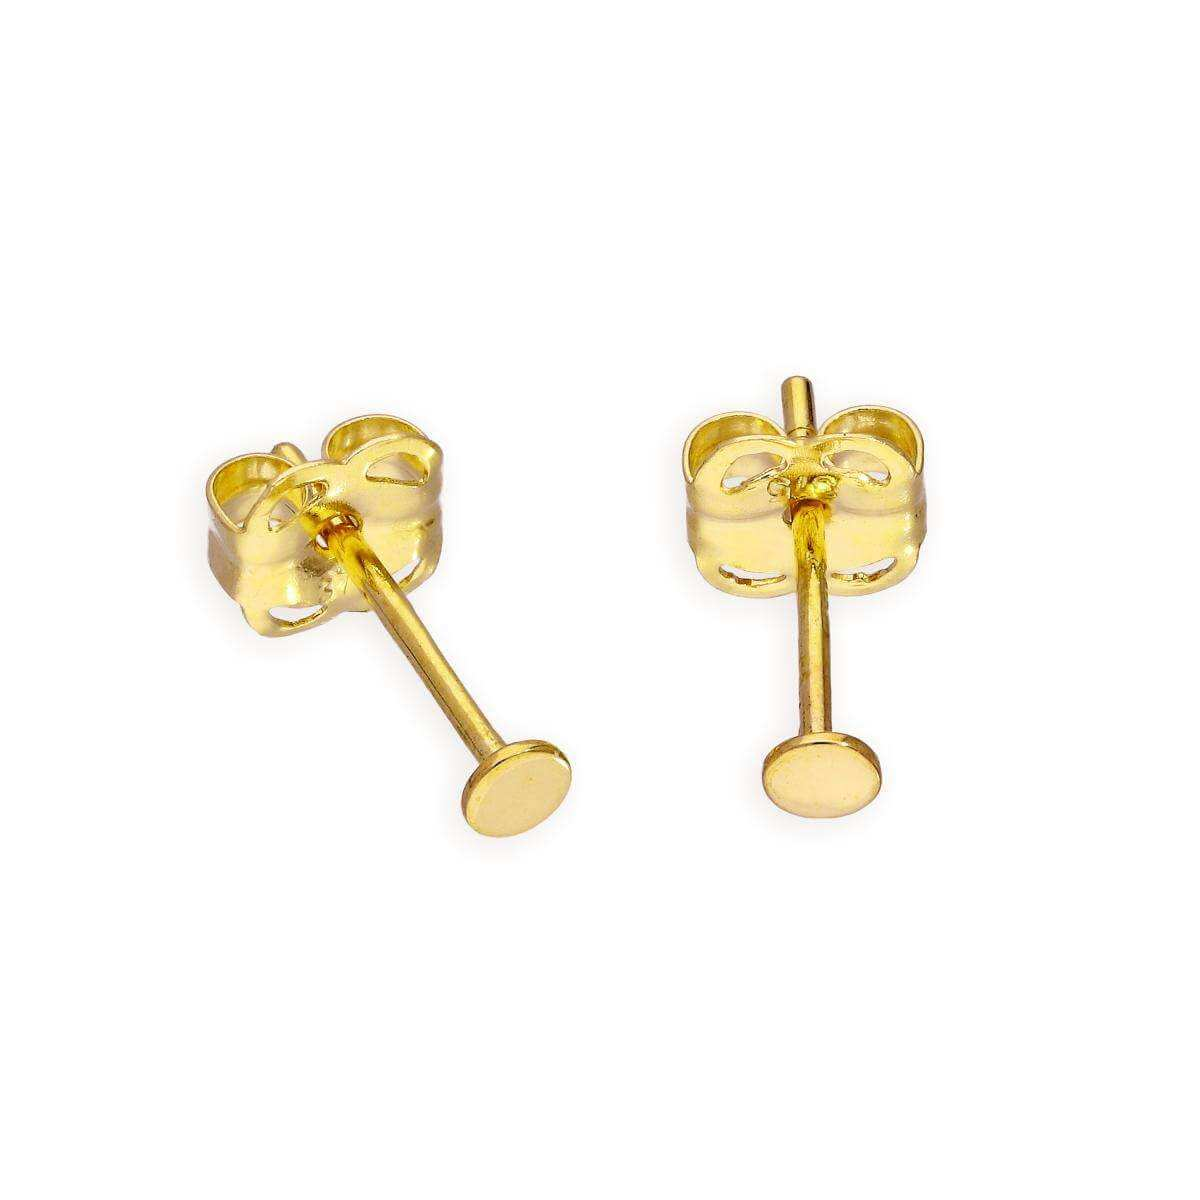 9ct Gold 2mm Flat Circle Stud Earrings